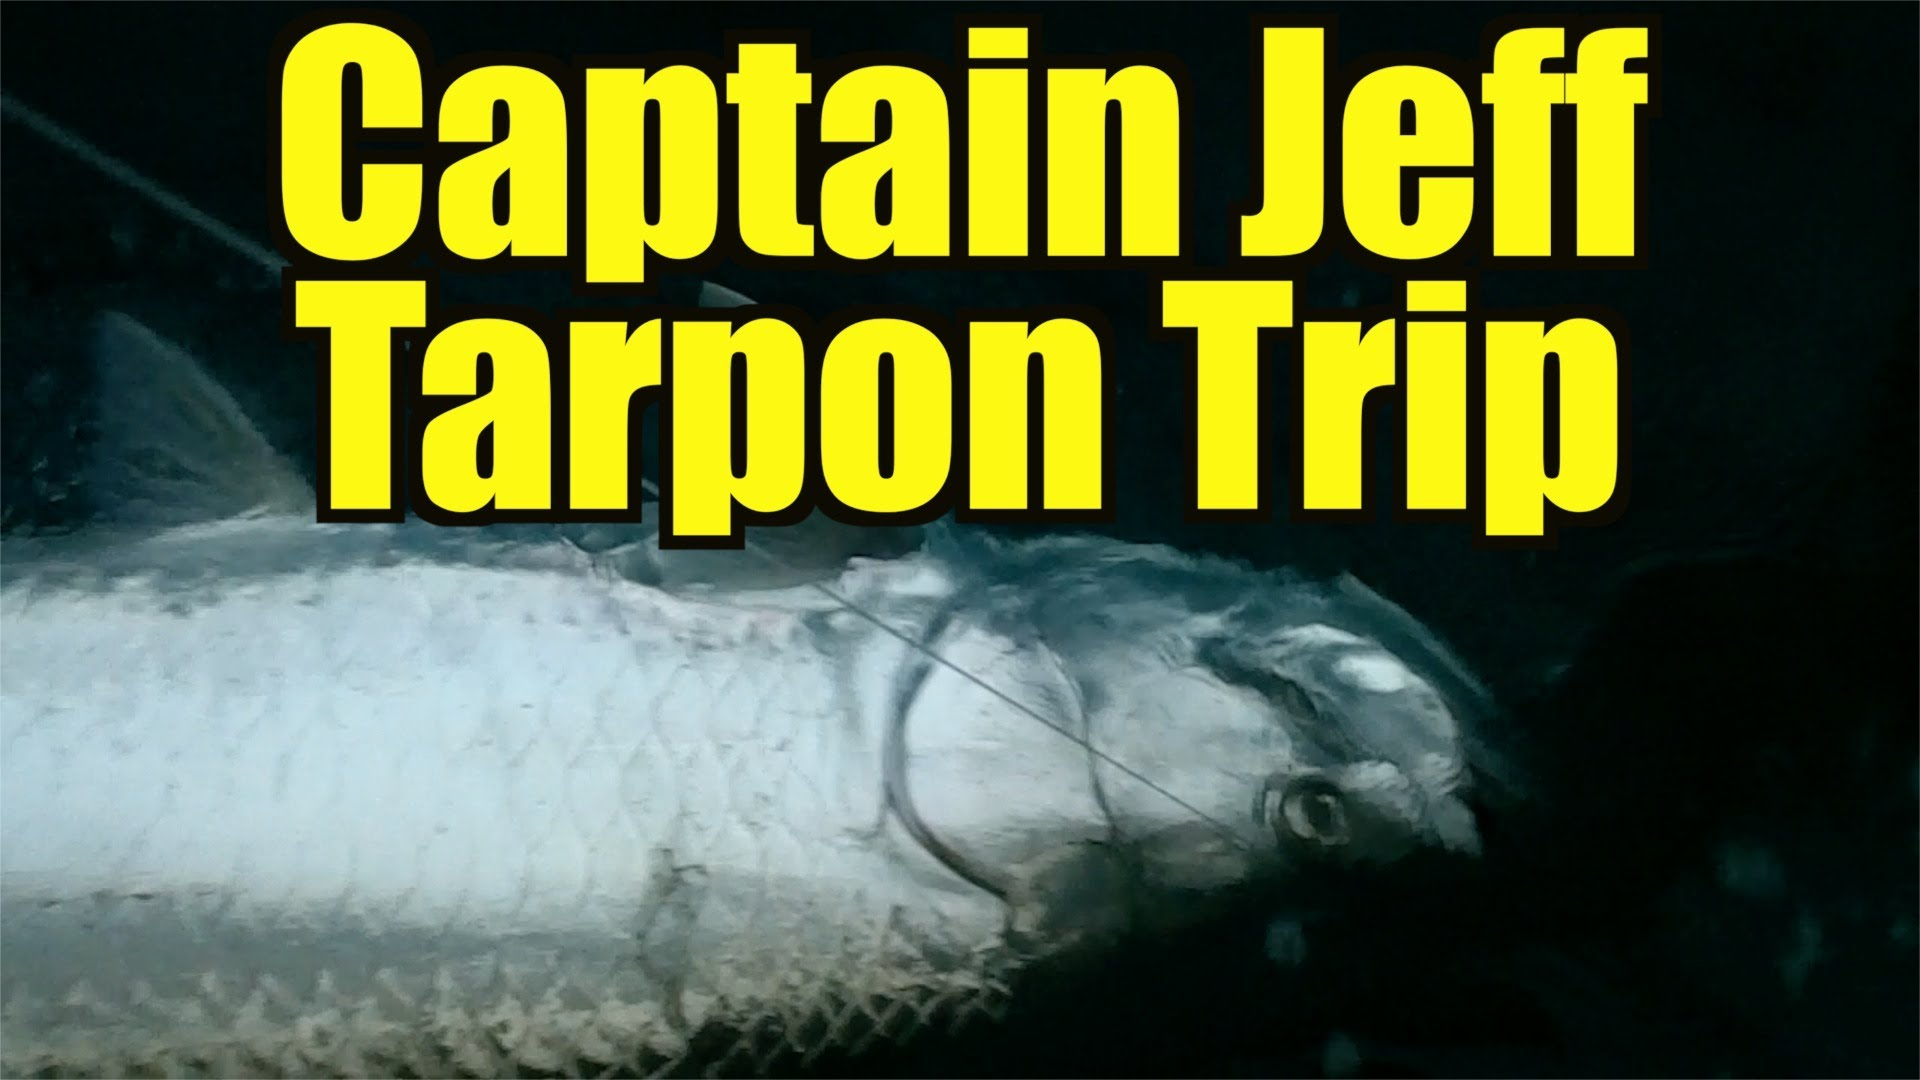 Captain Jeff Fishing Show Ep. 592